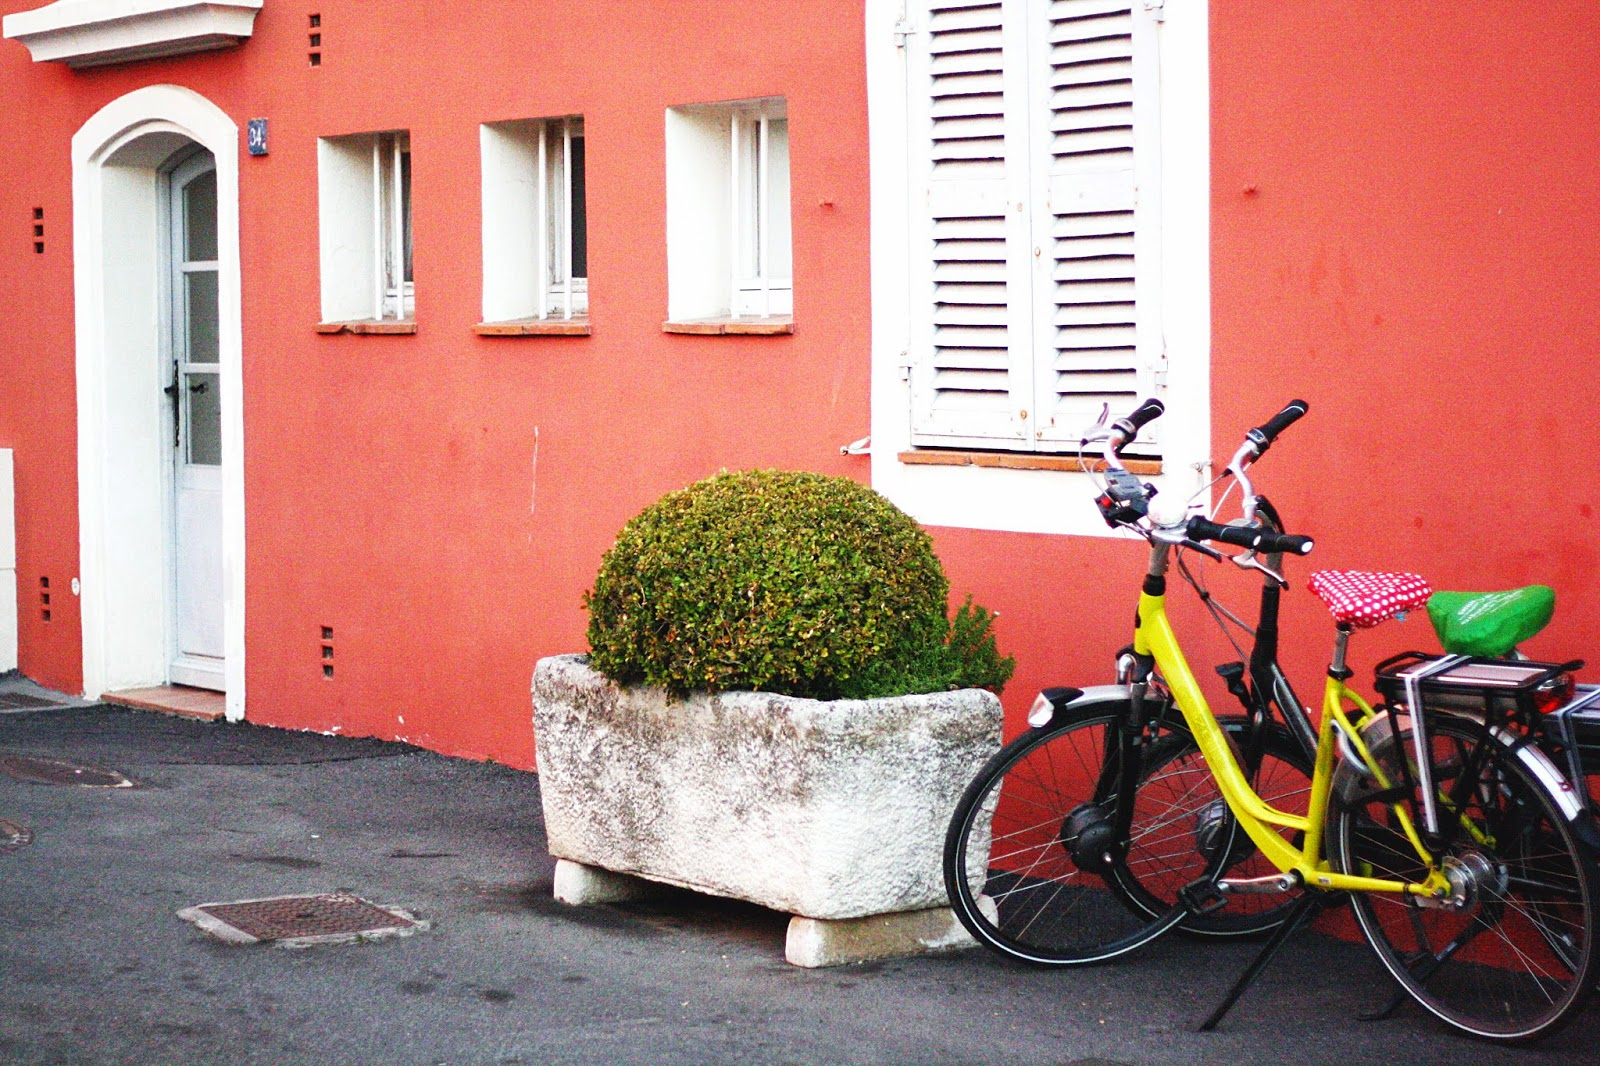 maison colorée vélo photo typique